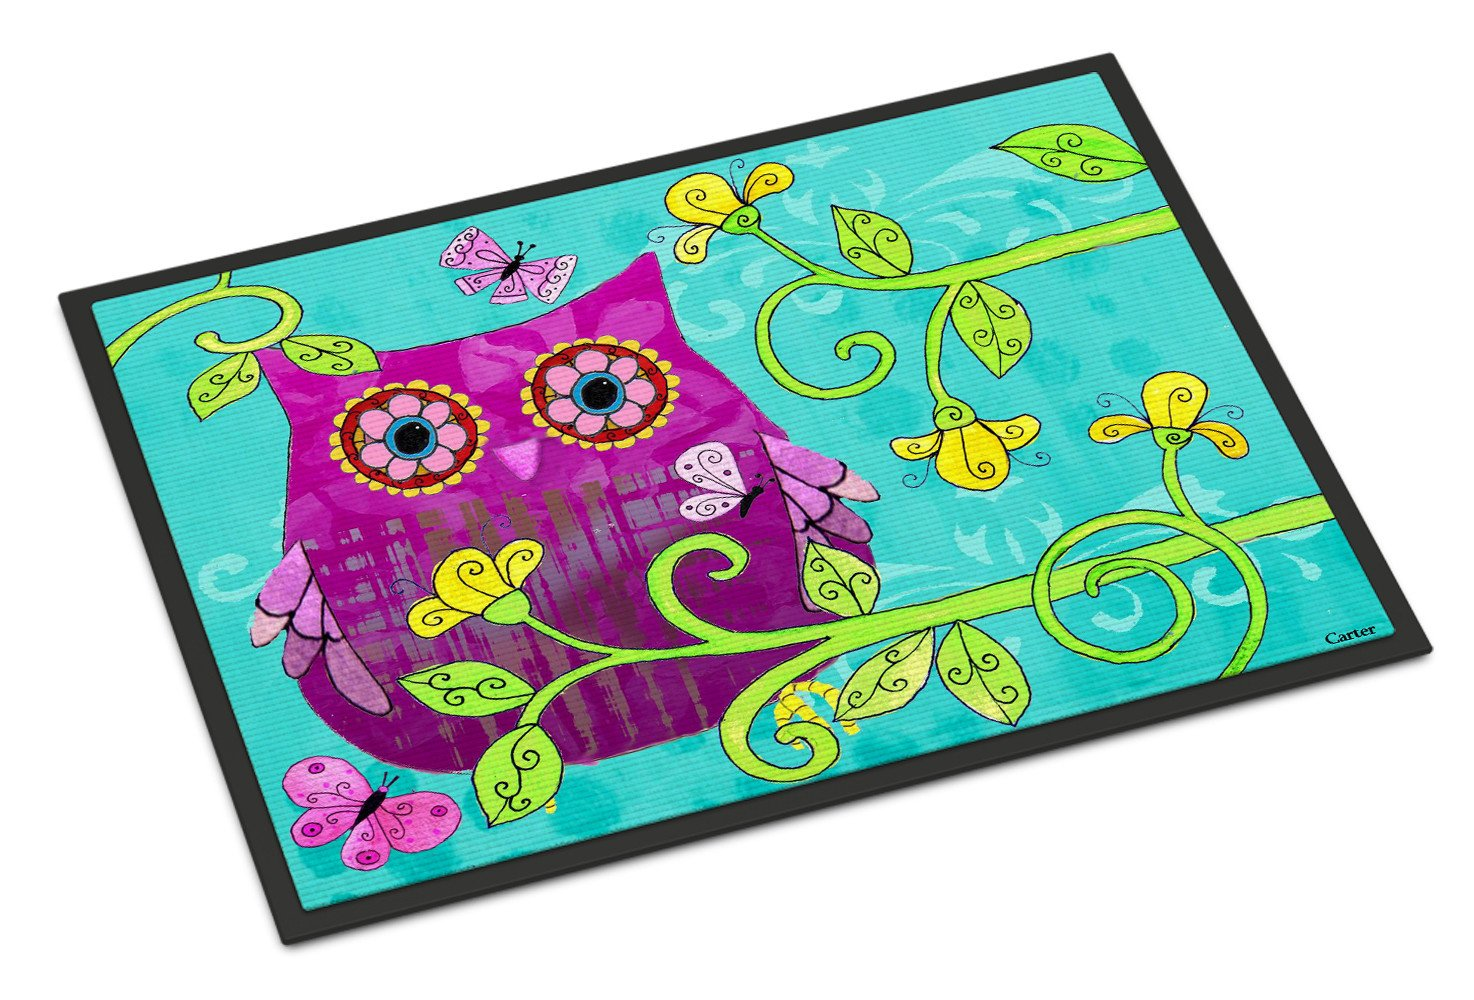 Sittin in the Flowers Owl Indoor or Outdoor Mat 18x27 PJC1093MAT by Caroline's Treasures